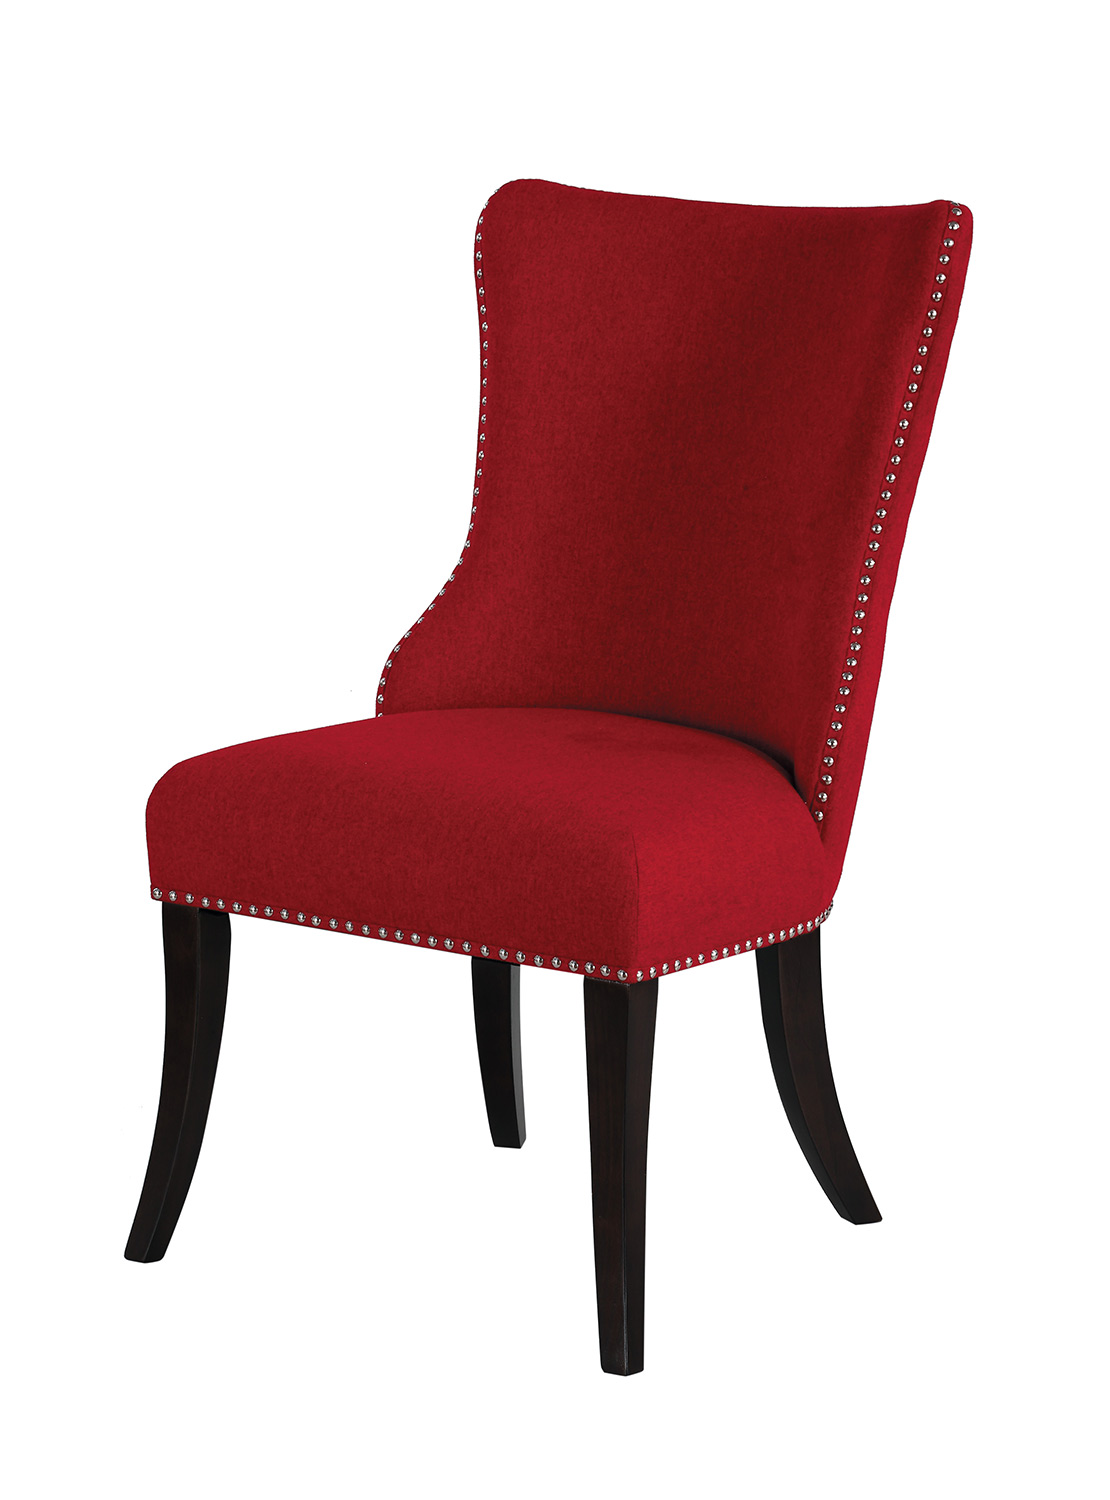 Homelegance Salema Side Chair - Red - Dark Brown